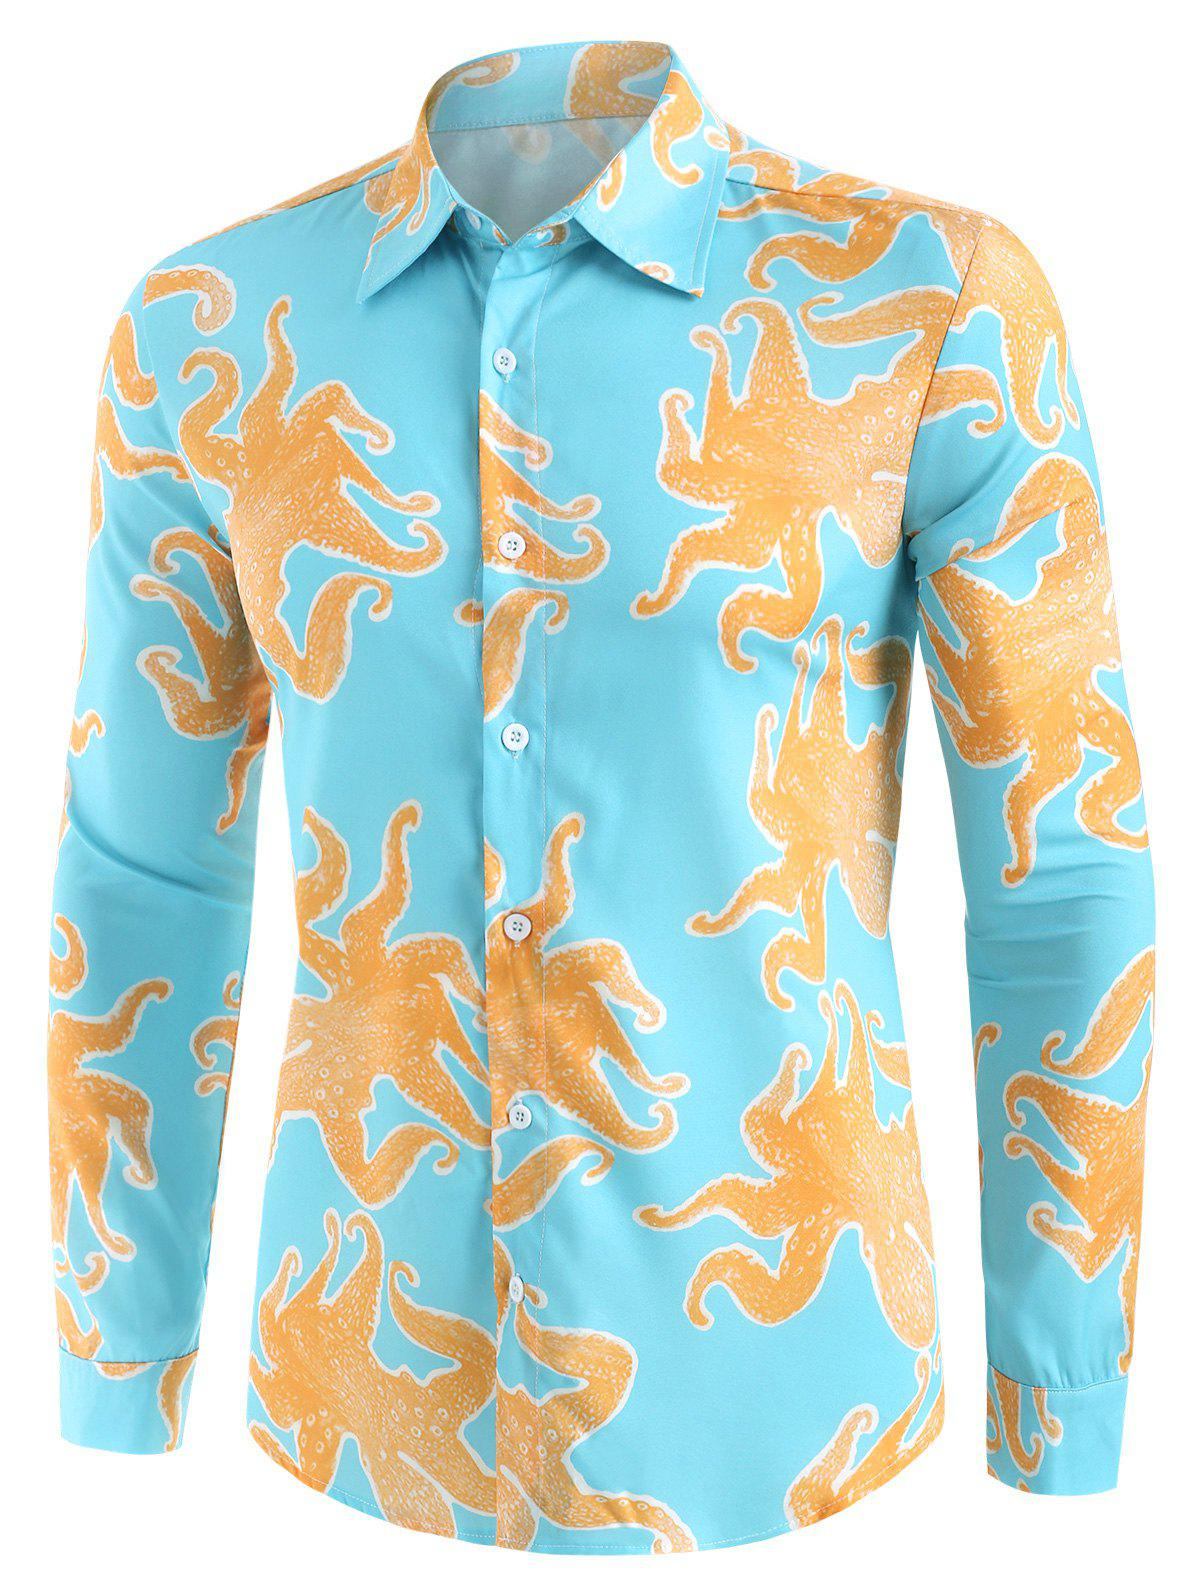 Funny Octopus Print Button Up Casual Shirt - multicolor XL